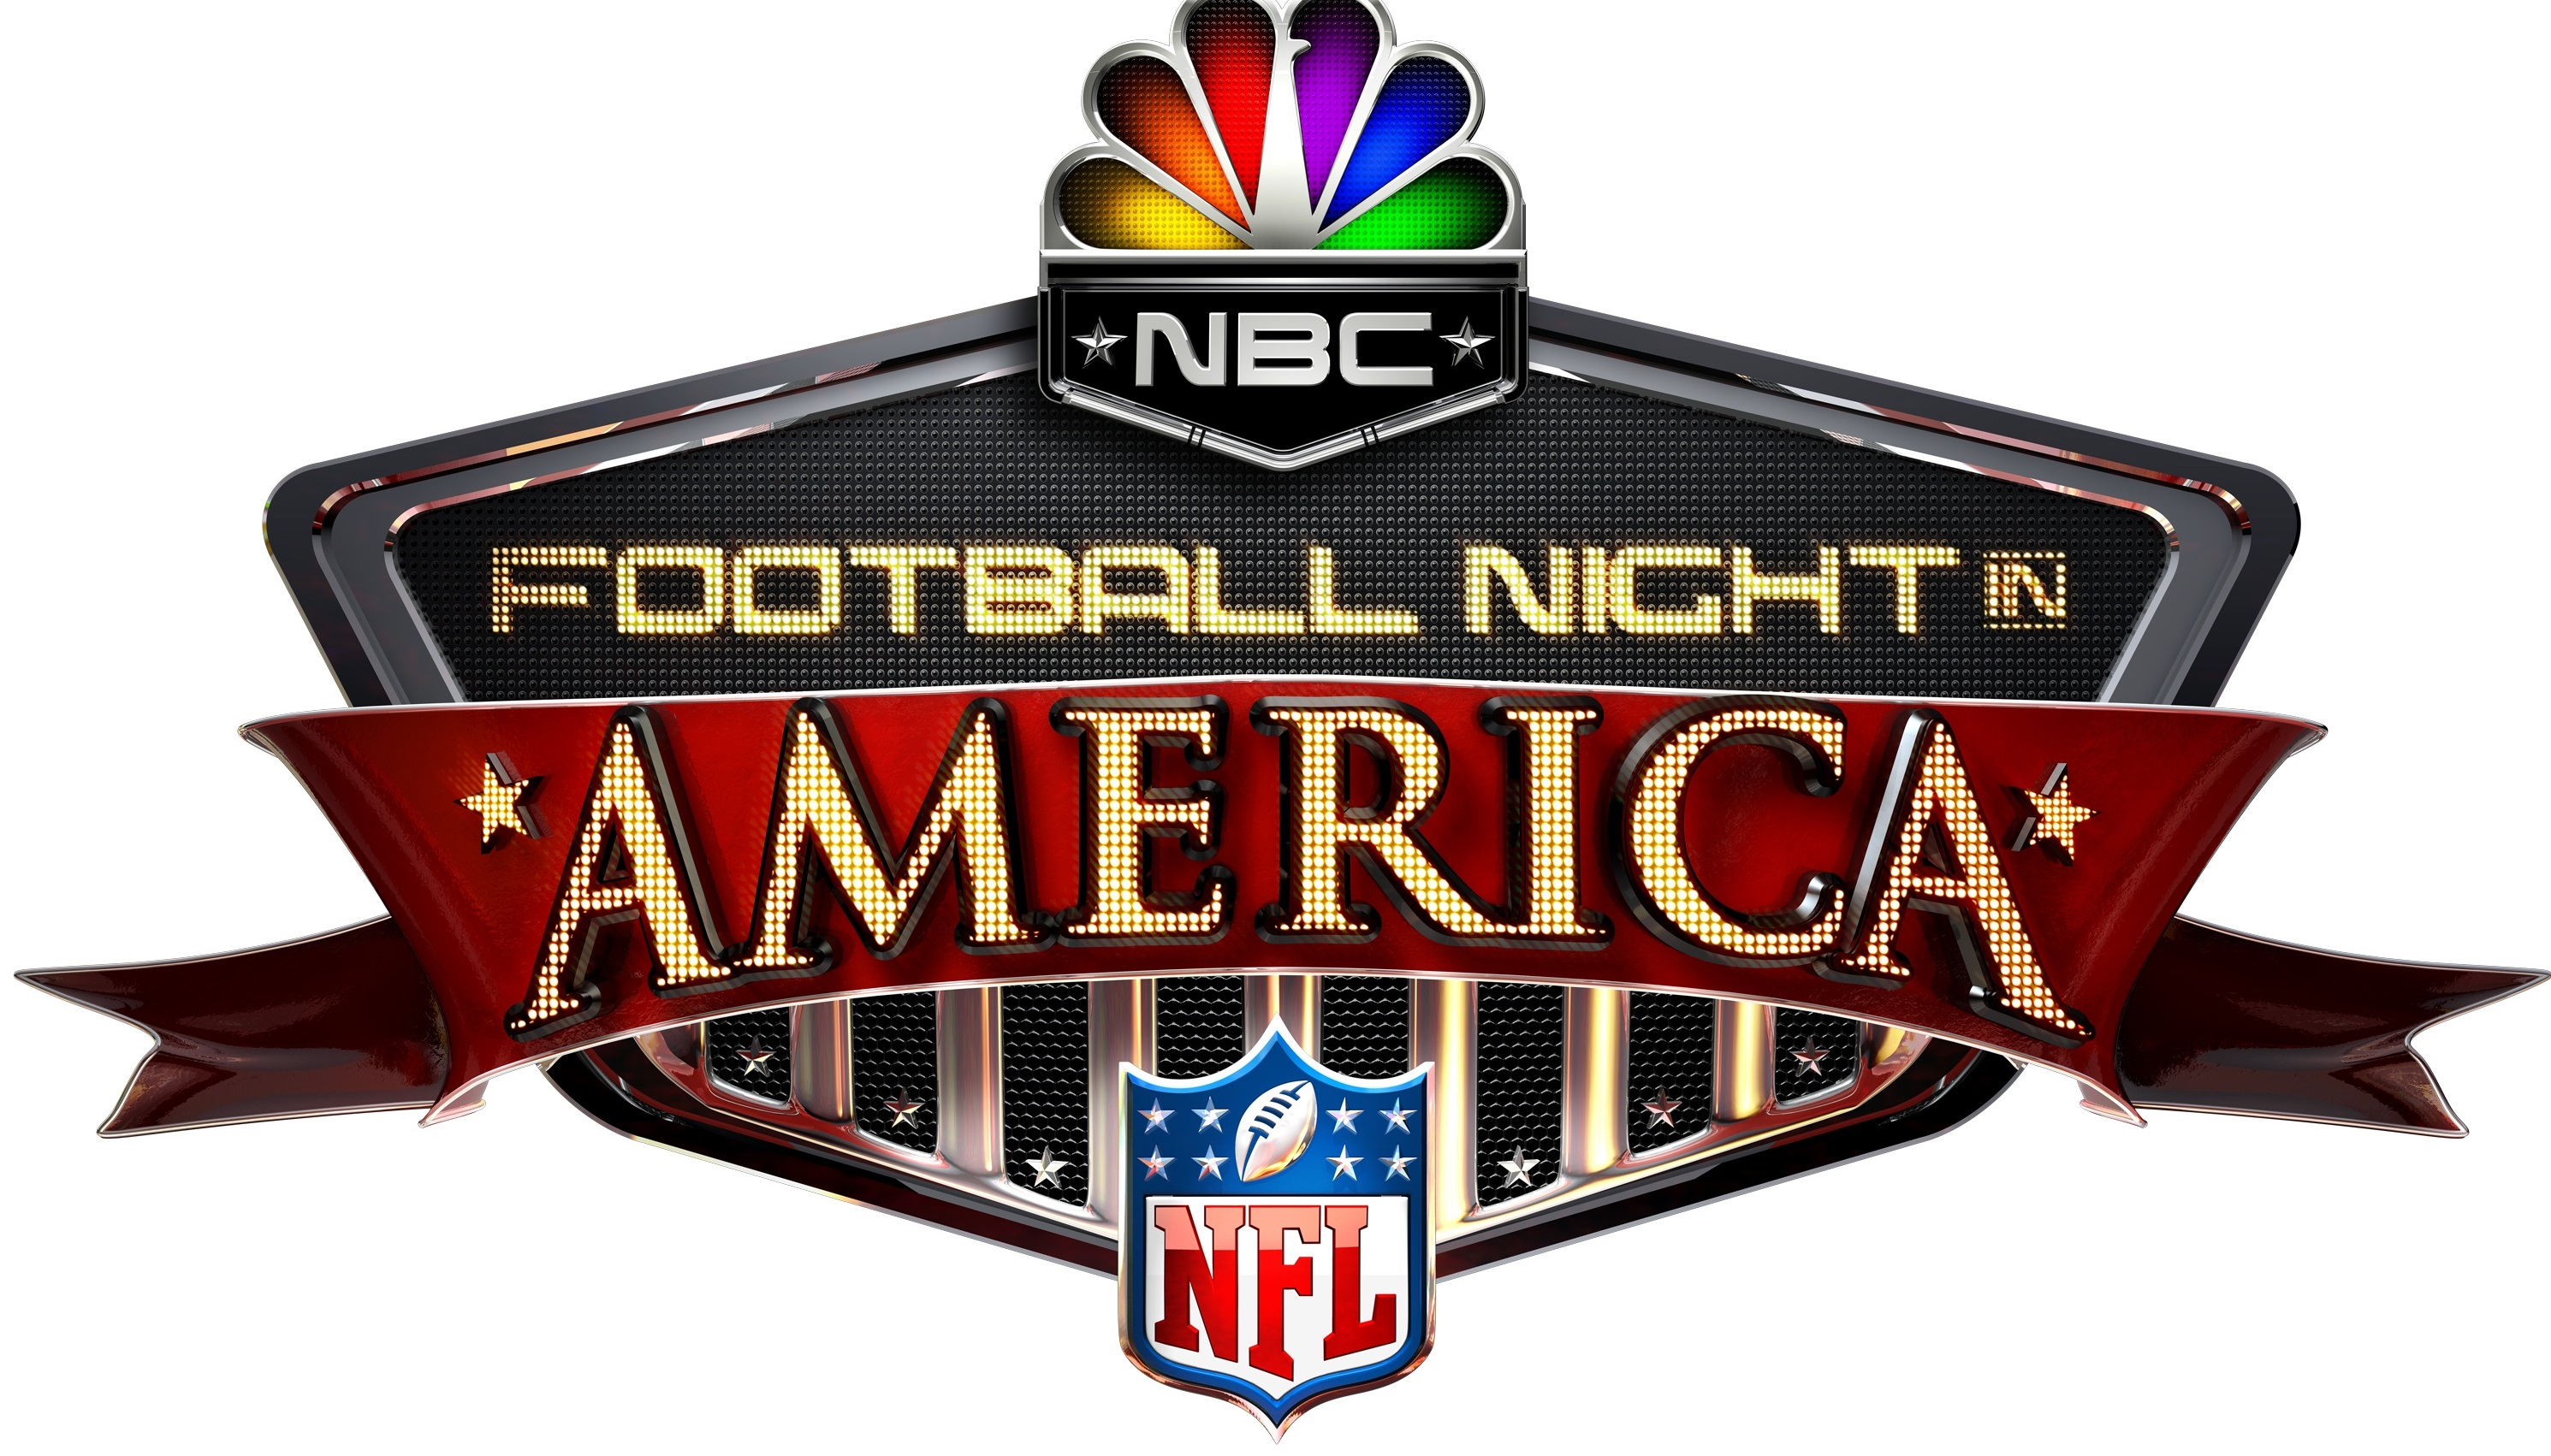 Nbc Previews Football Night In America For Week 1 Of The